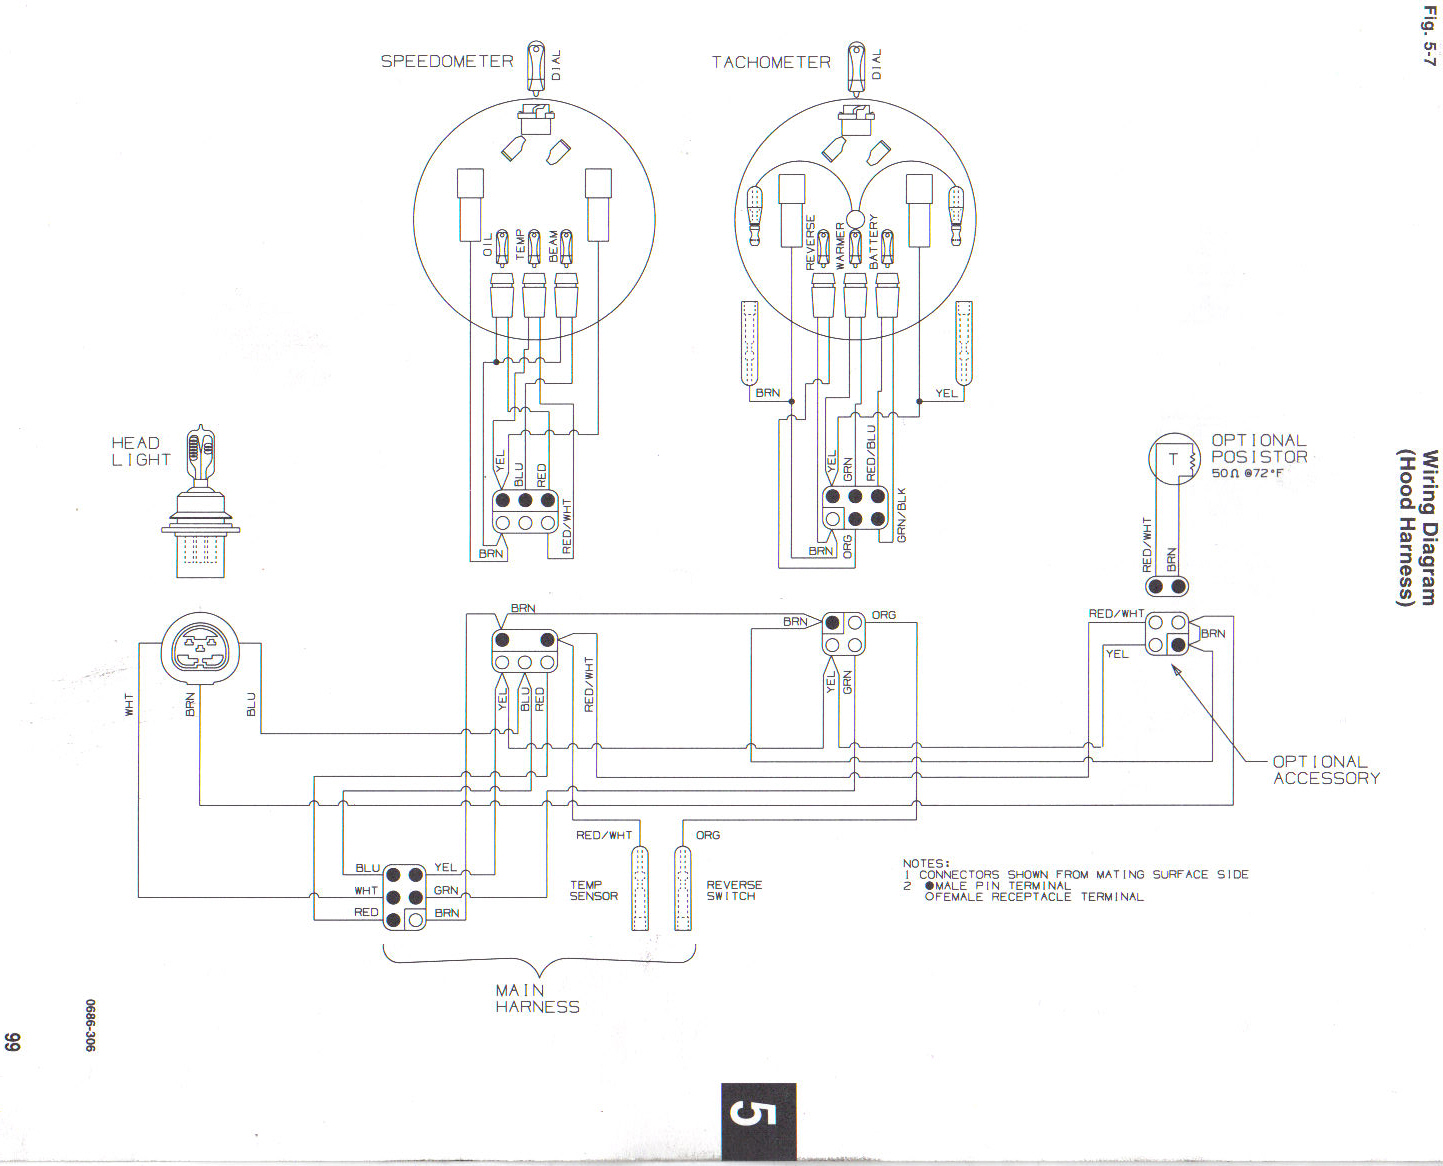 2002 suzuki gsxr 750 parts diagram